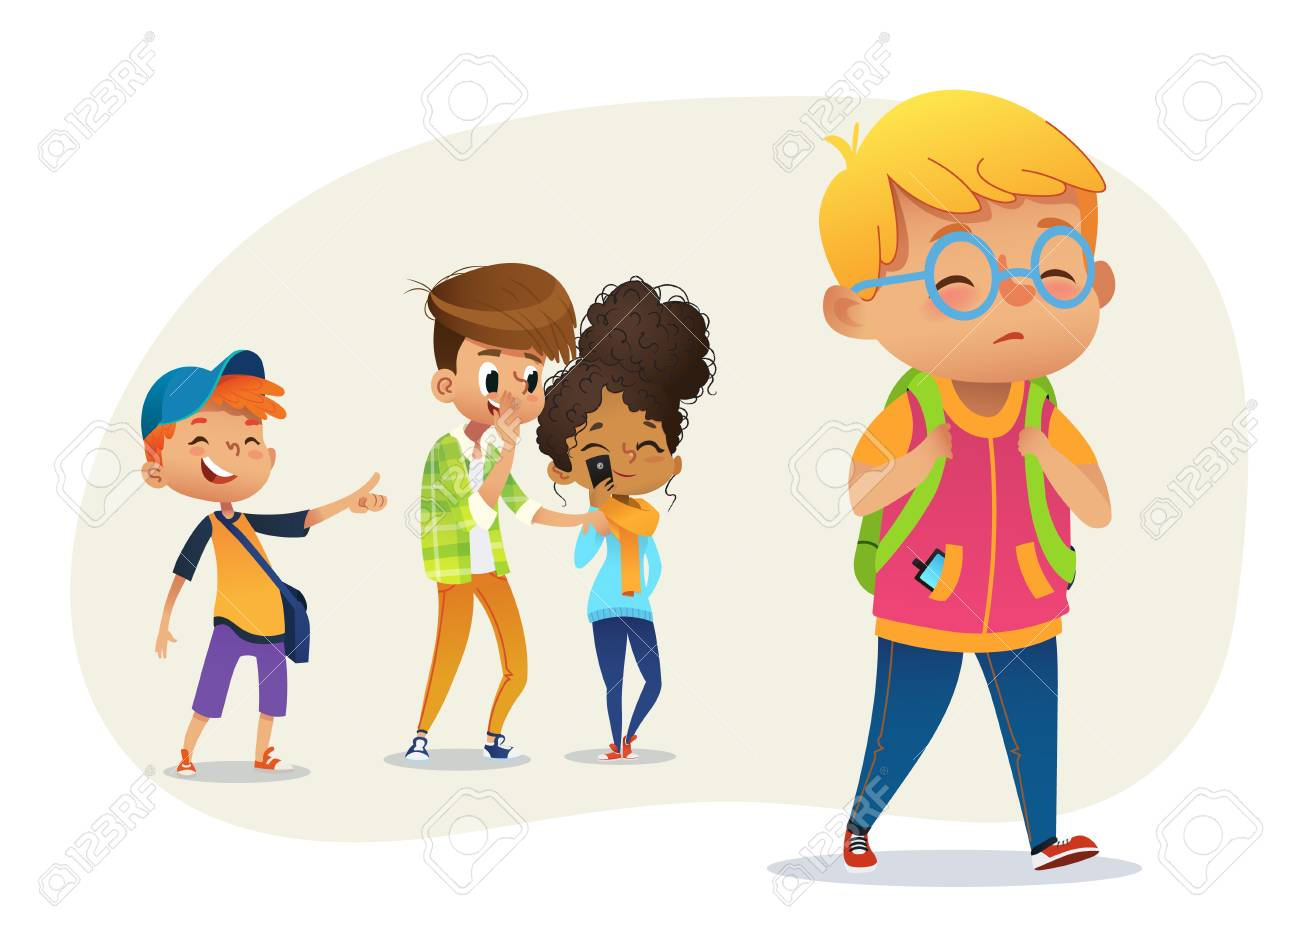 Sad overweight boy wearing glasses going through school. School boys and gill laughing and pointing at the obese boy. Body shaming, fat shaming. Bulling at school. Vector illustration. - 112085550